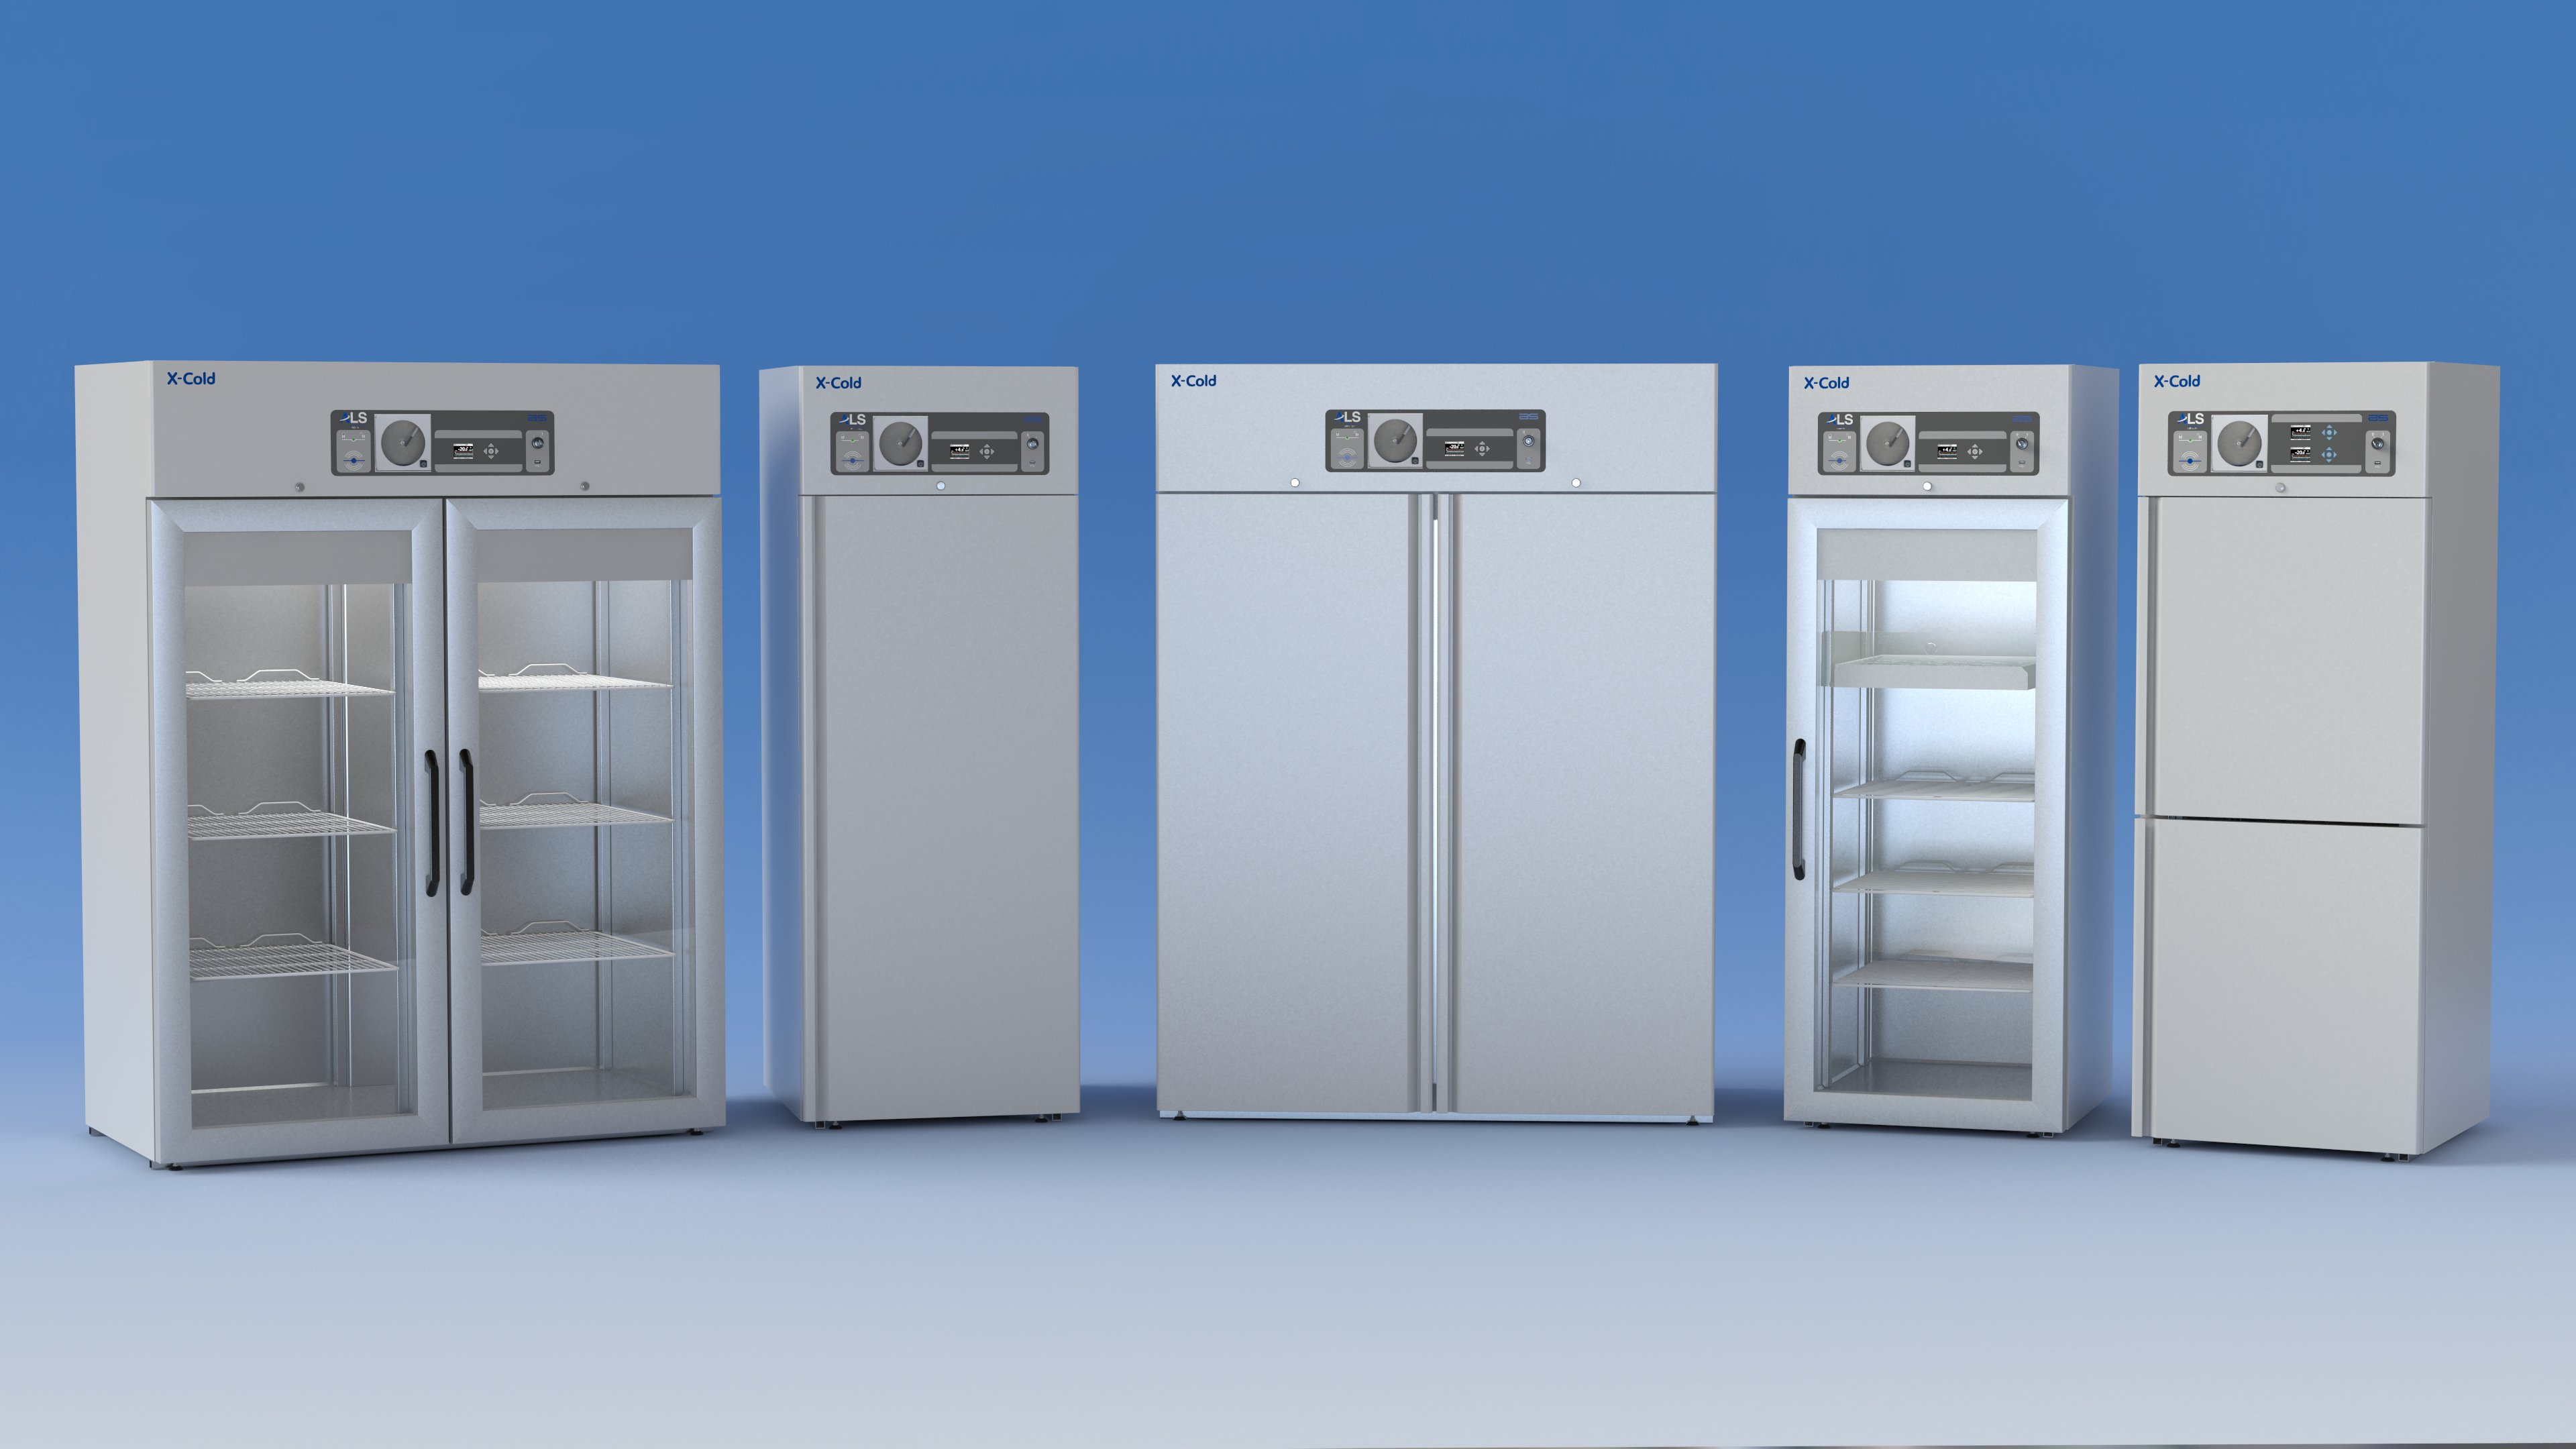 Freezer Rentals And Leases   KWIPPED